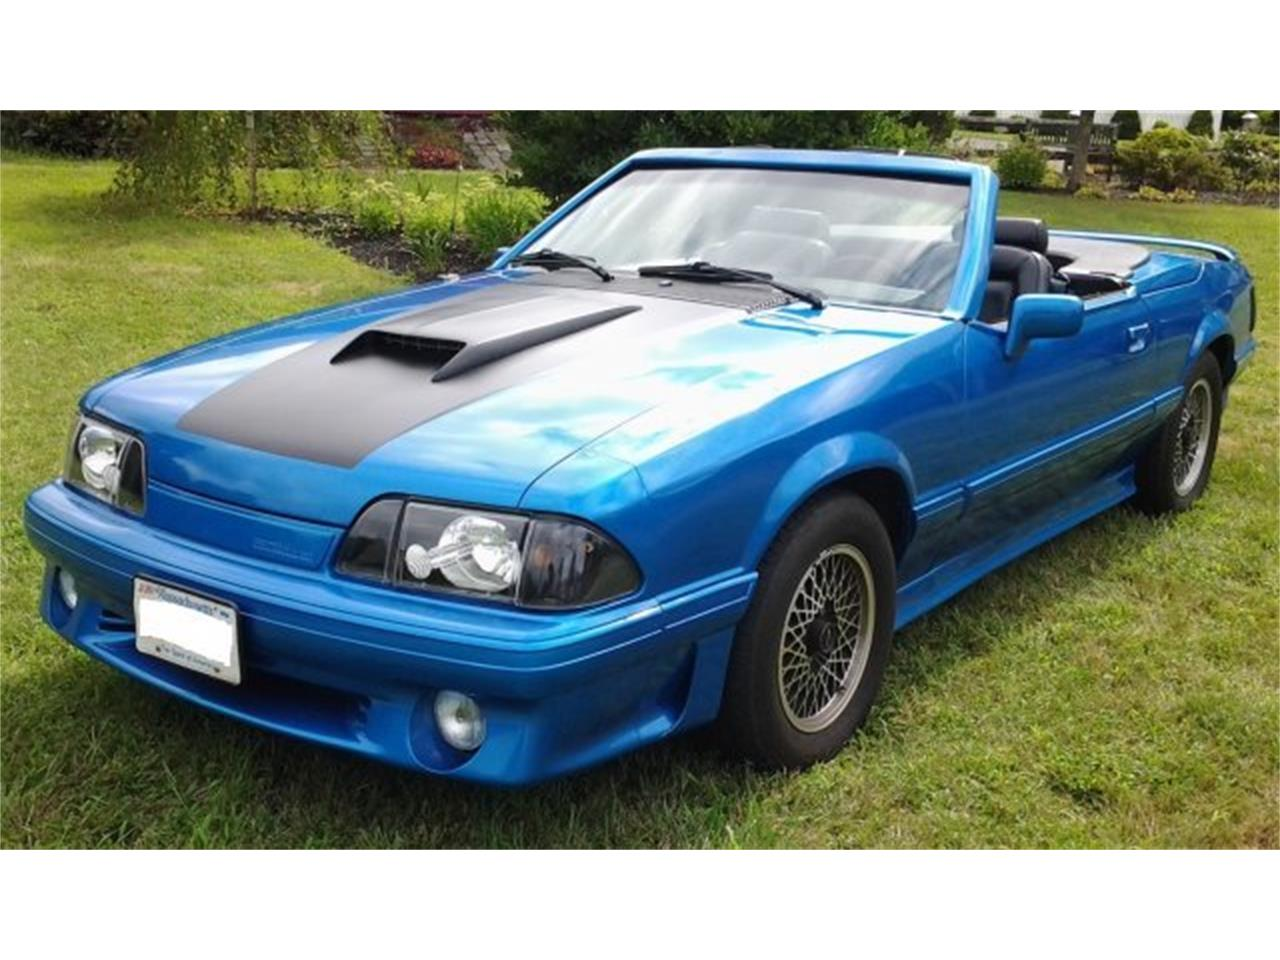 Large picture of 88 mustang odby